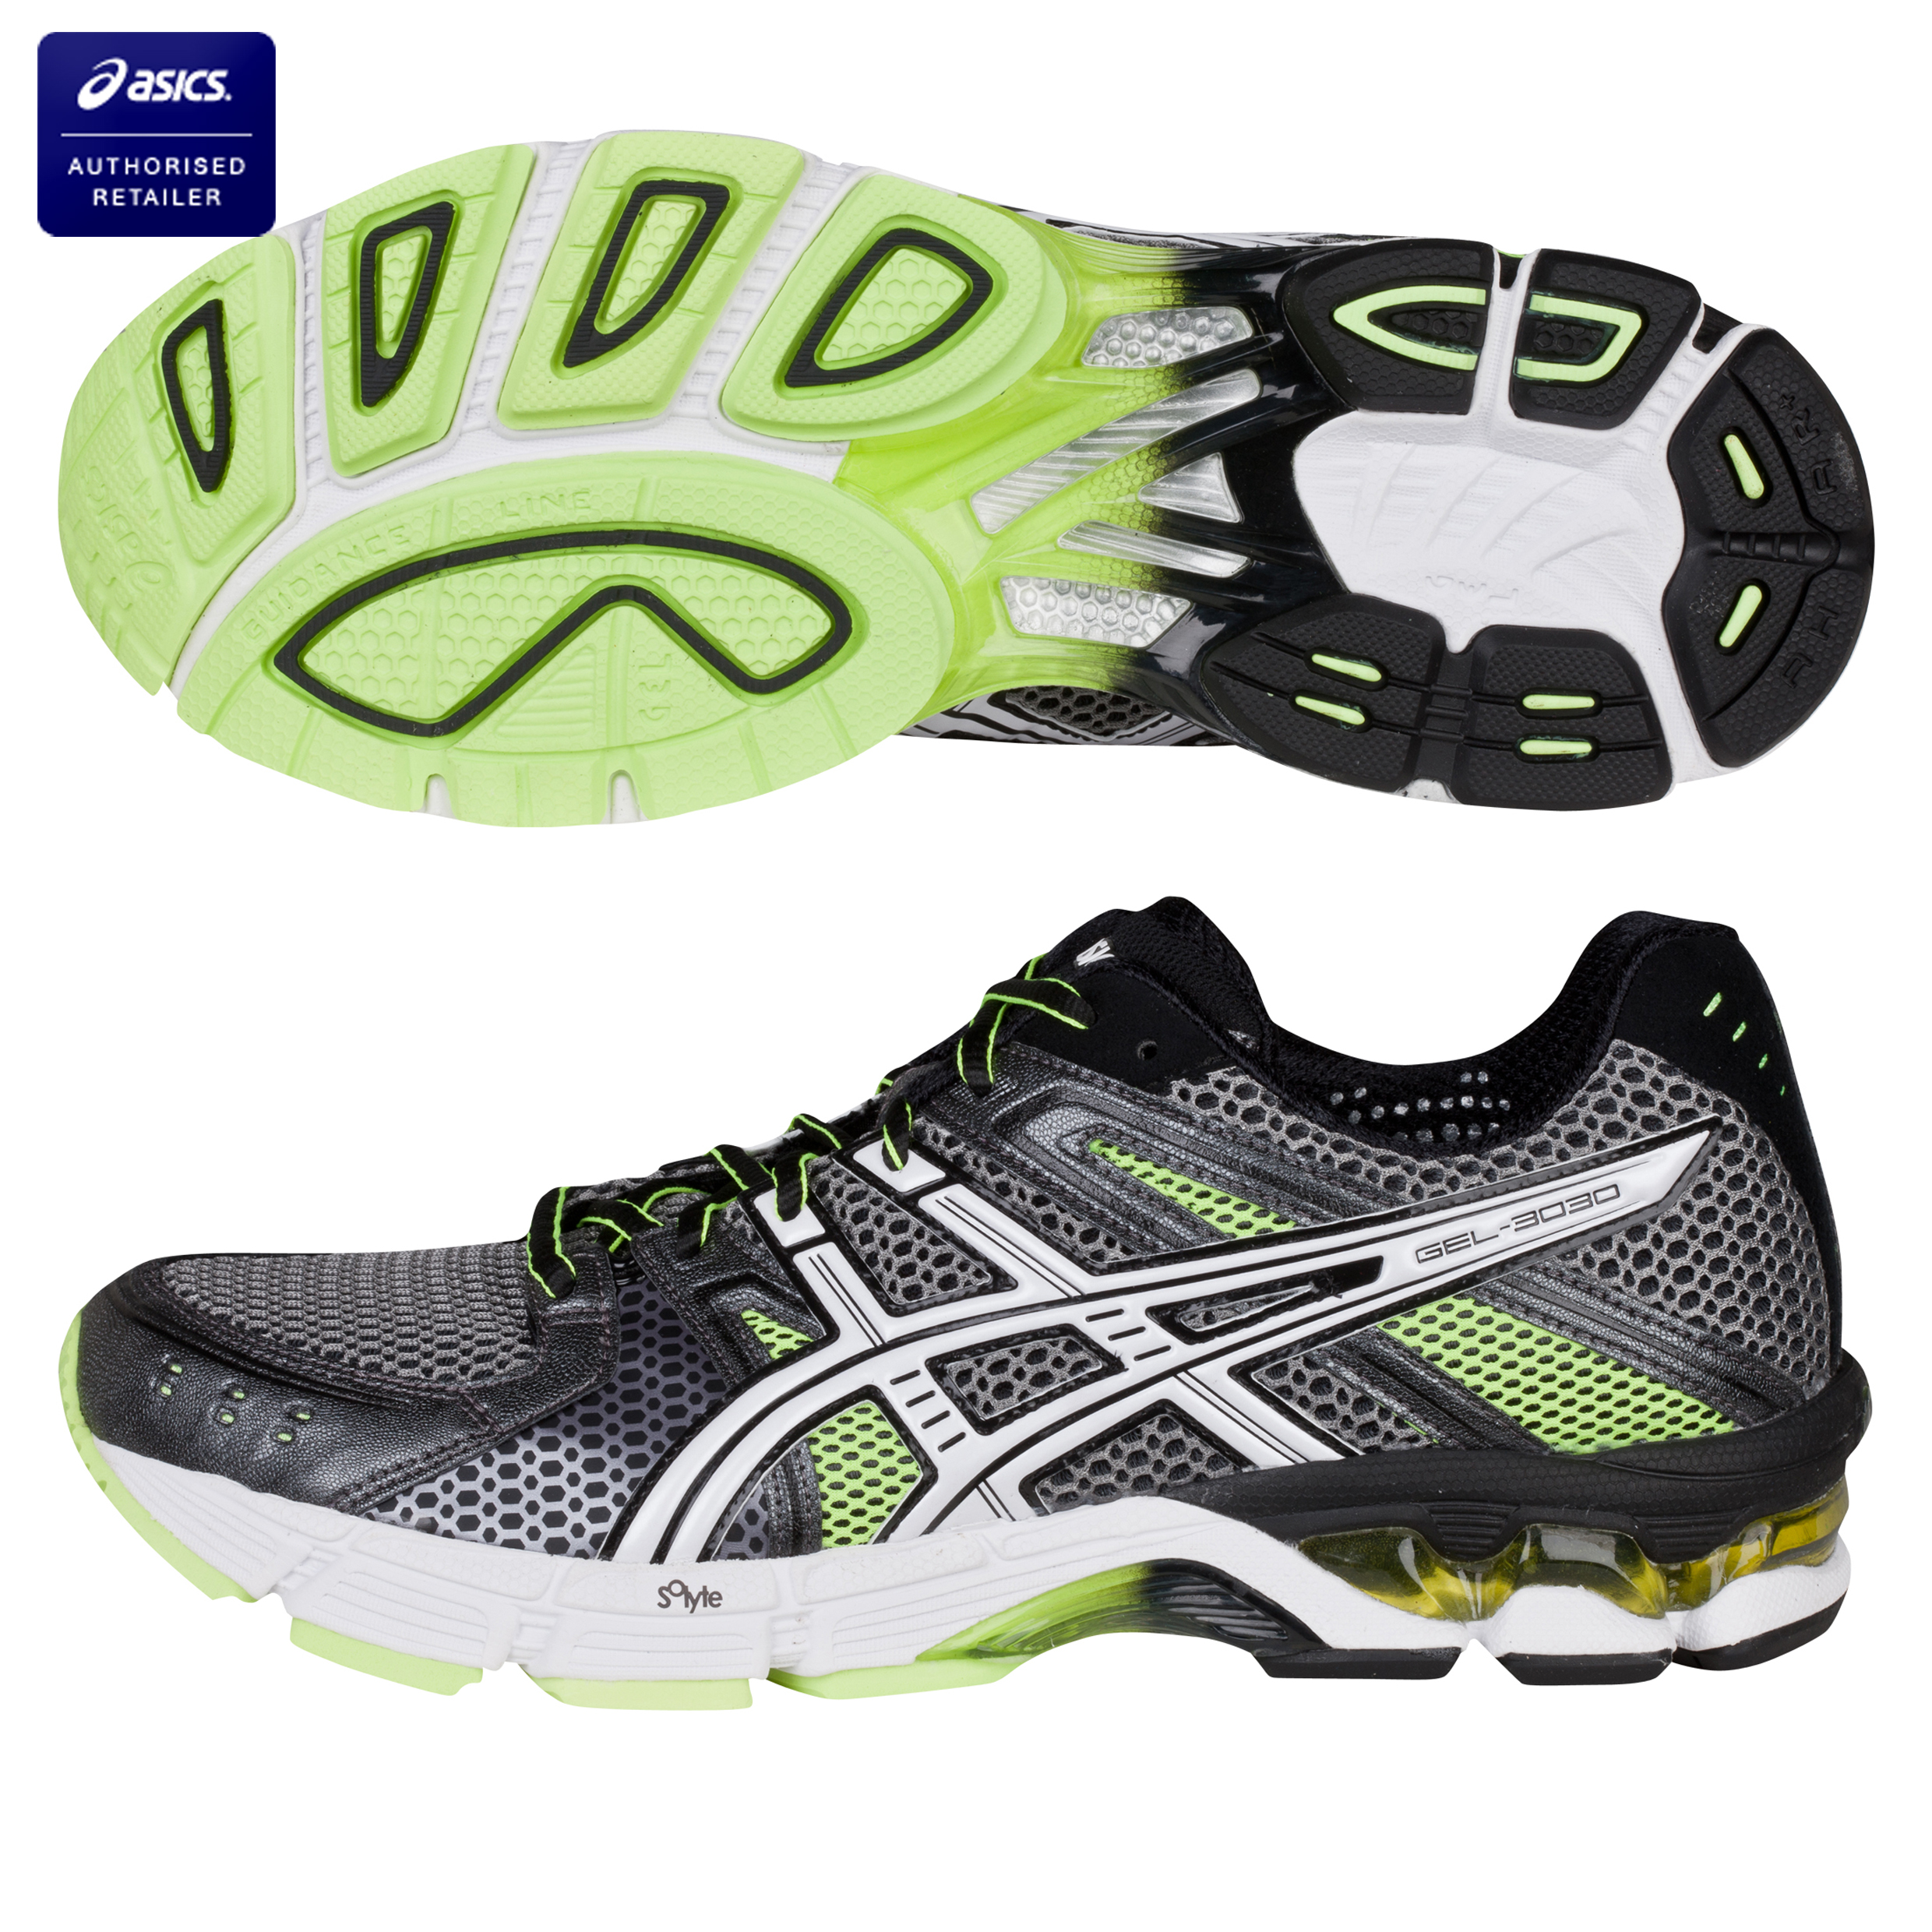 Asics Gel-3030 Running Trainers - Titanium/White/Neon Yellow